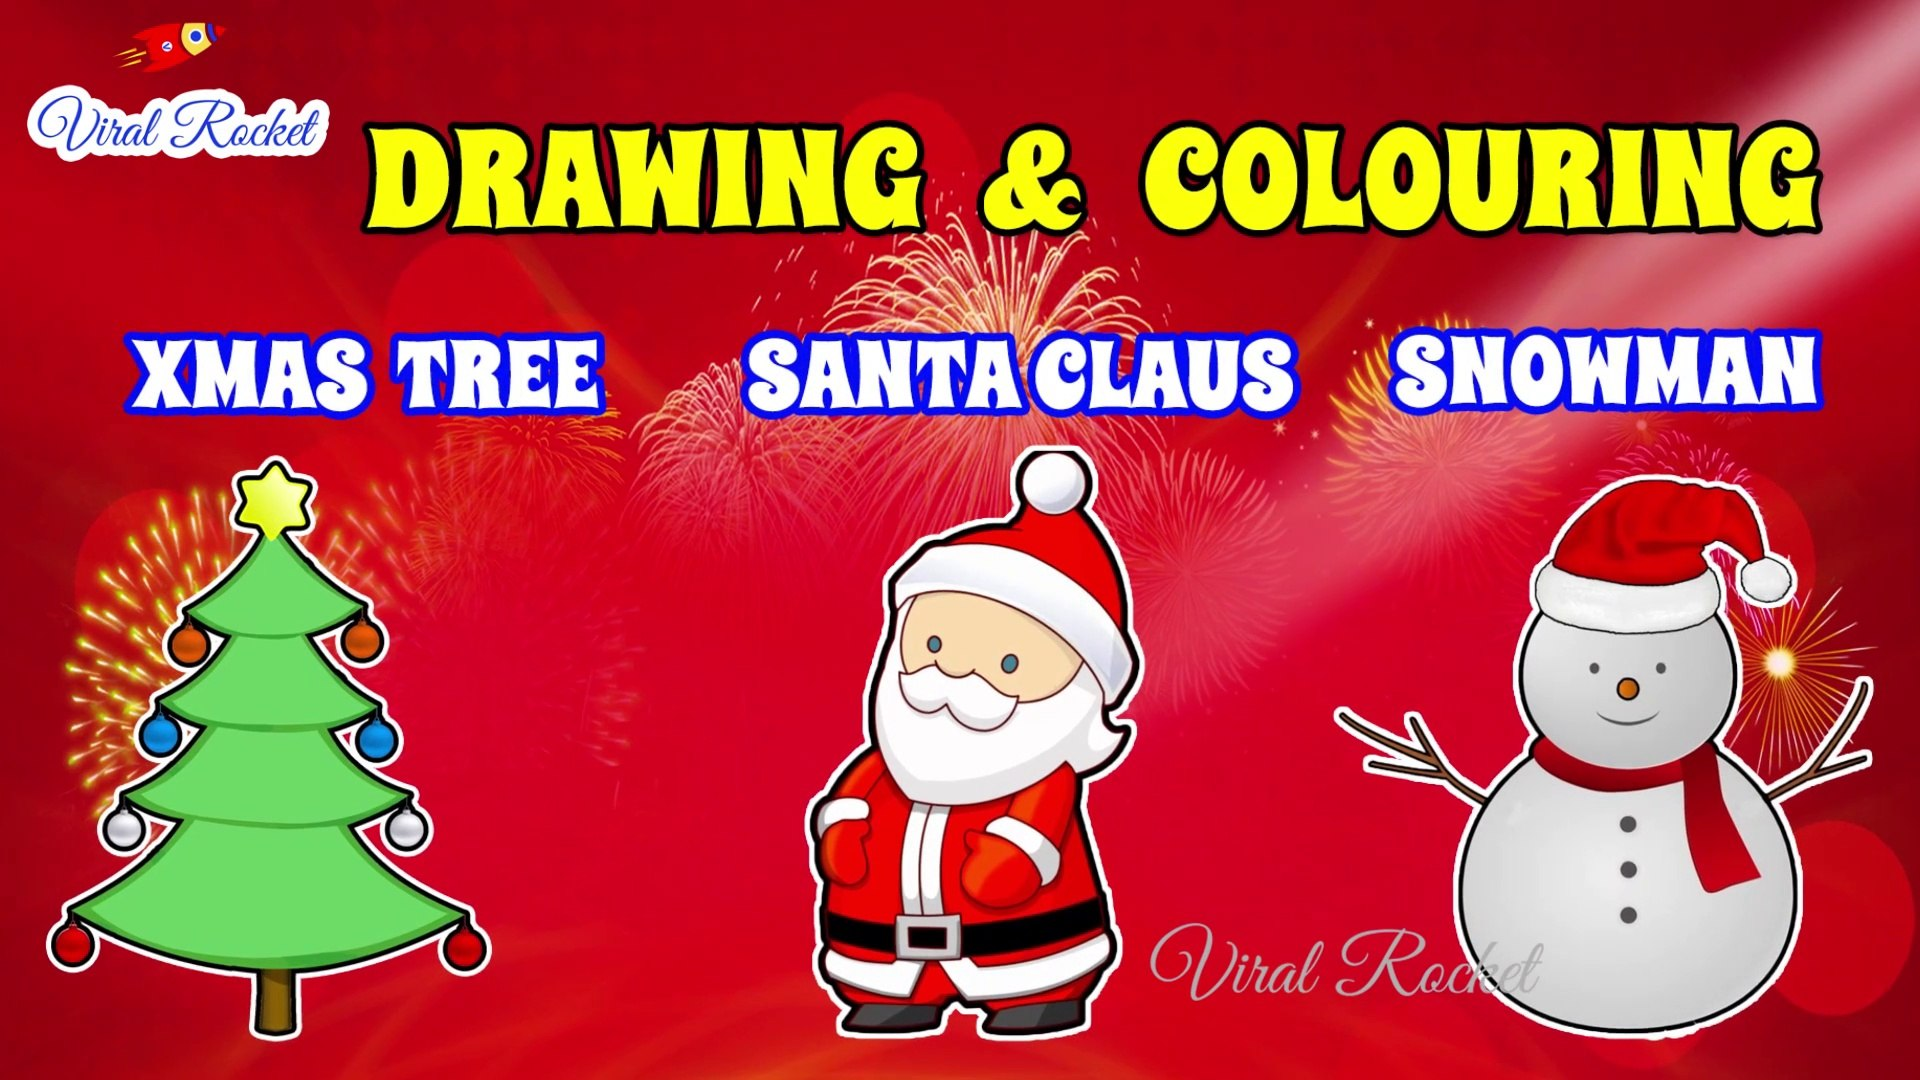 Santa Claus Xmas Tree Drawing And Colouring Snowman Coloring Christmas Drawing For Kids Art Breeze 3 Video Dailymotion